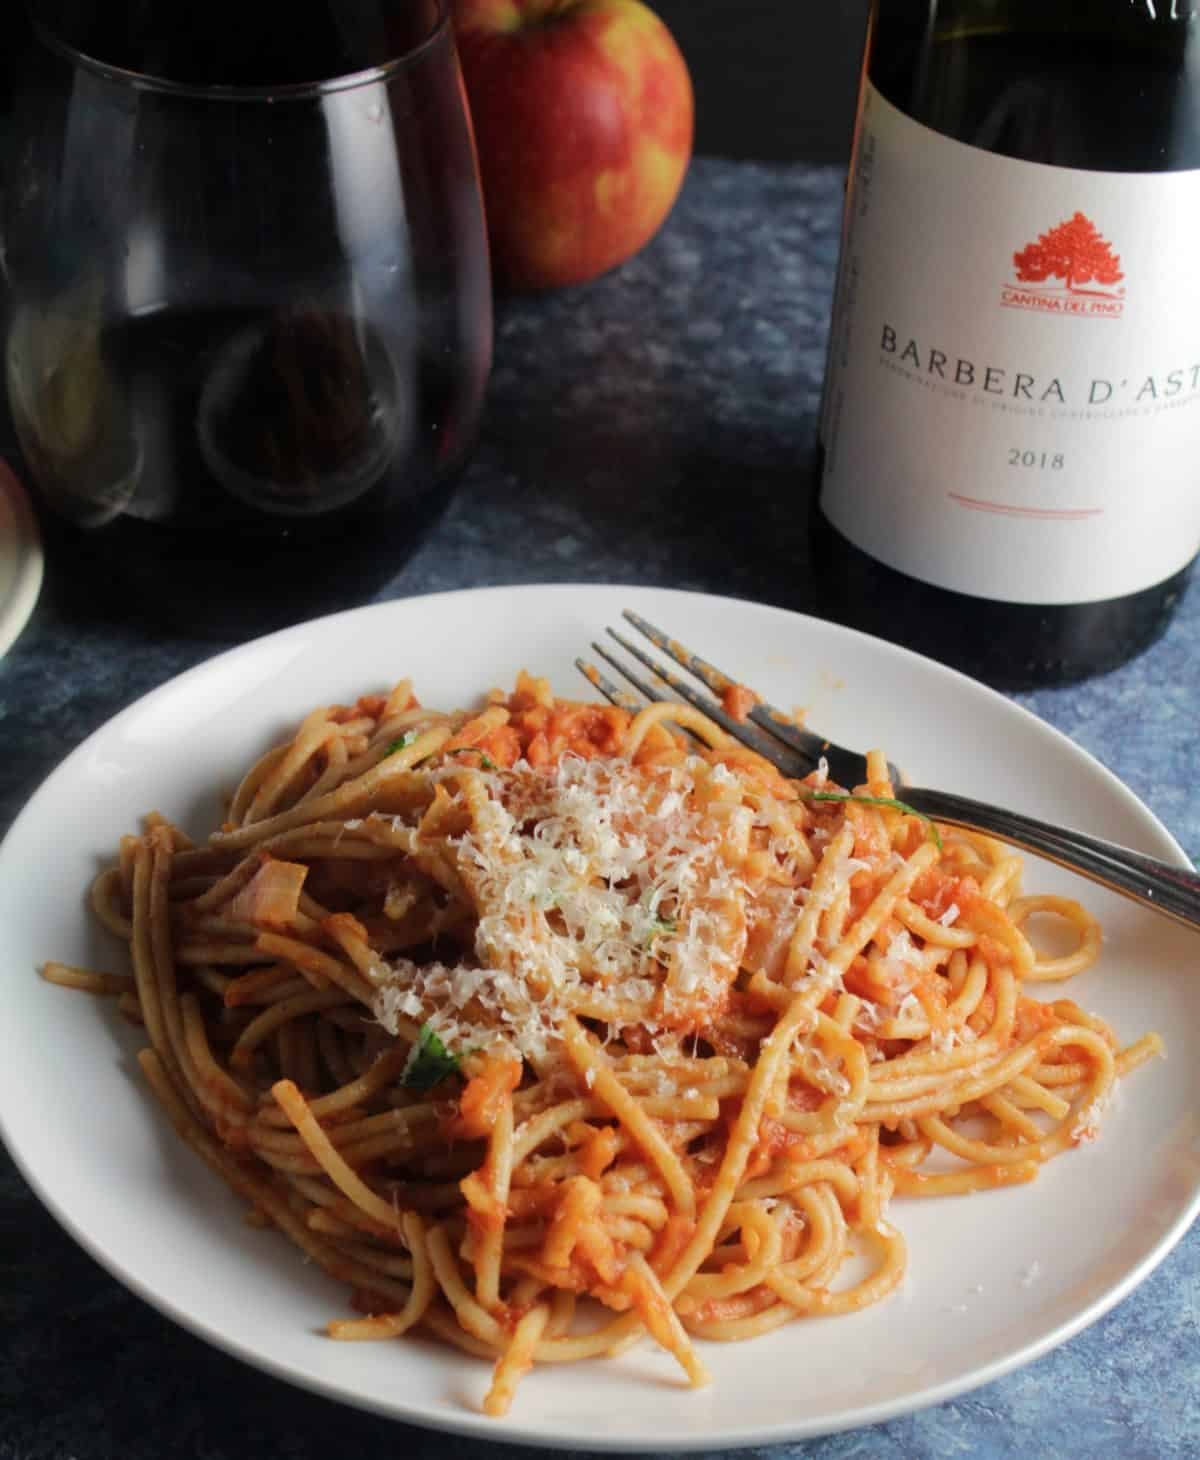 spaghetti with apple tomato sauce served with a Barbera, Italian red wine.